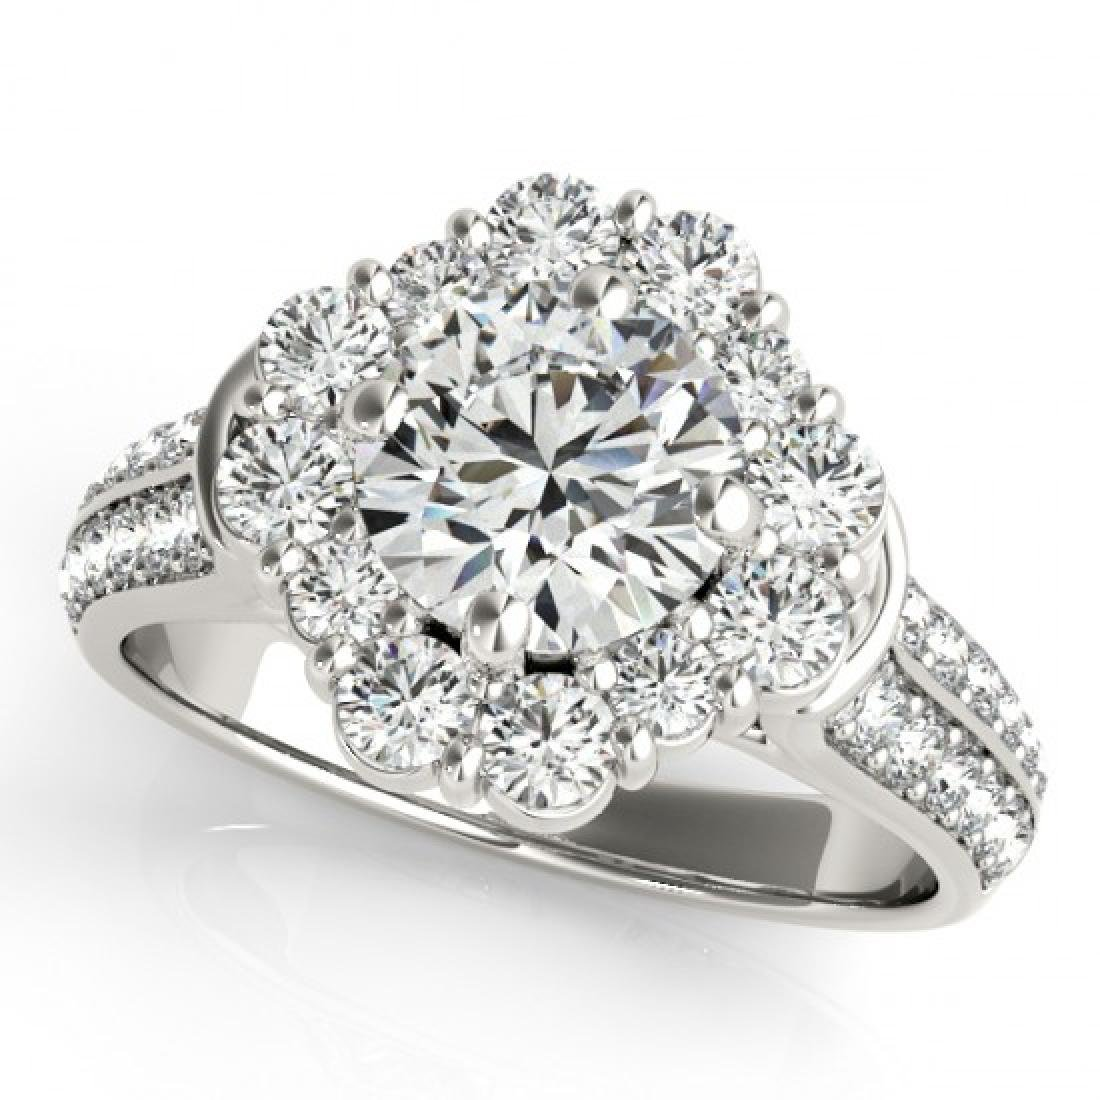 2.16 CTW Certified VS/SI Diamond Solitaire Halo Ring